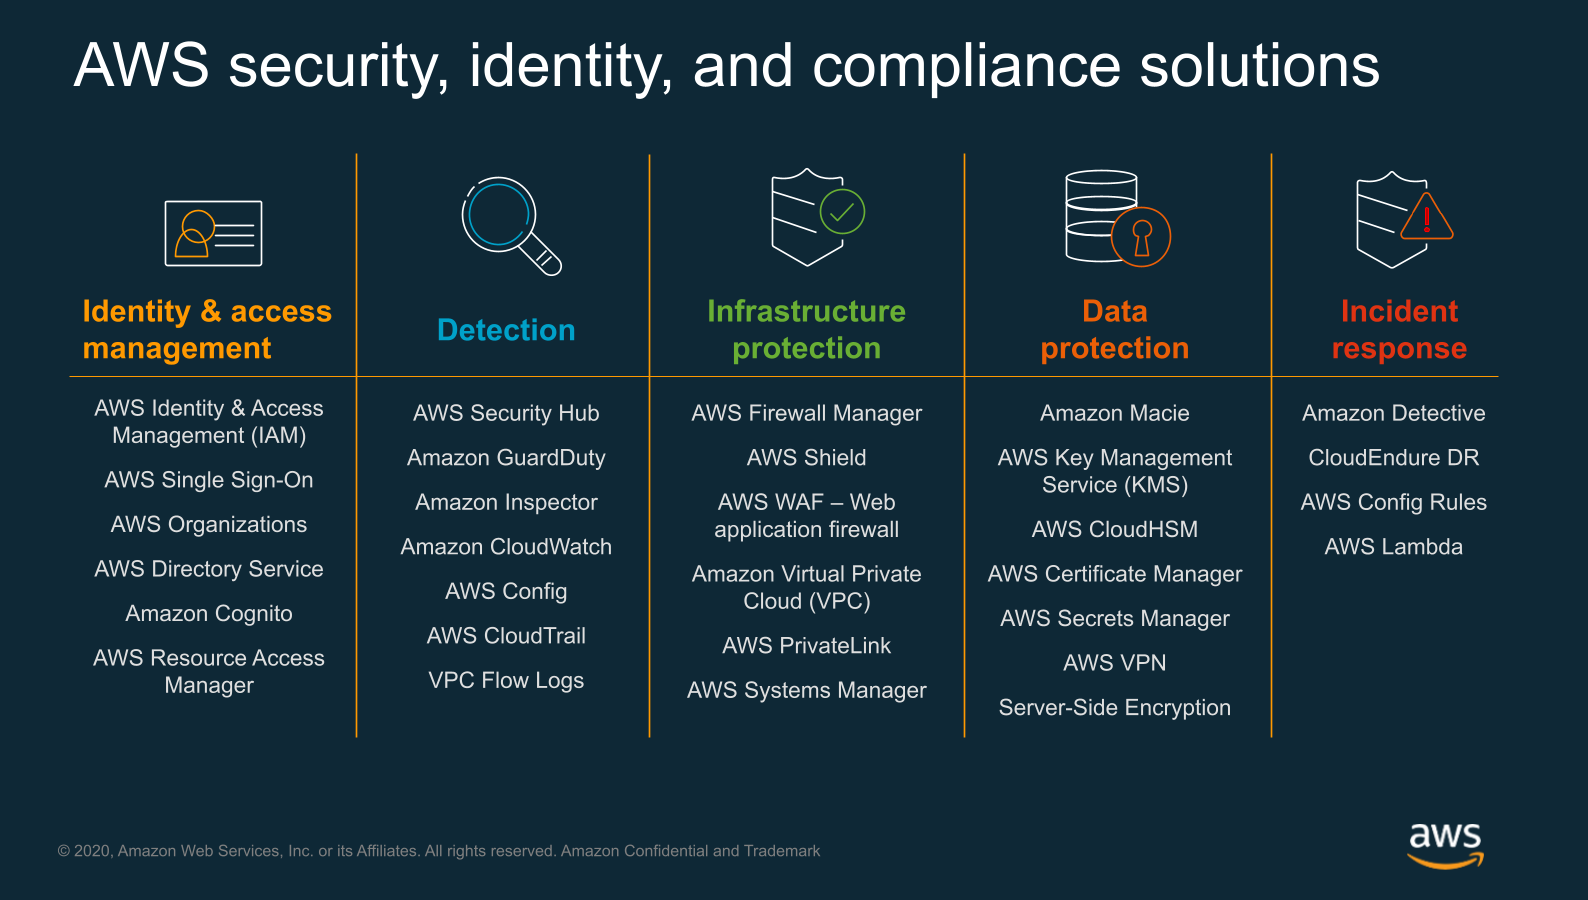 AWS Security Services functions